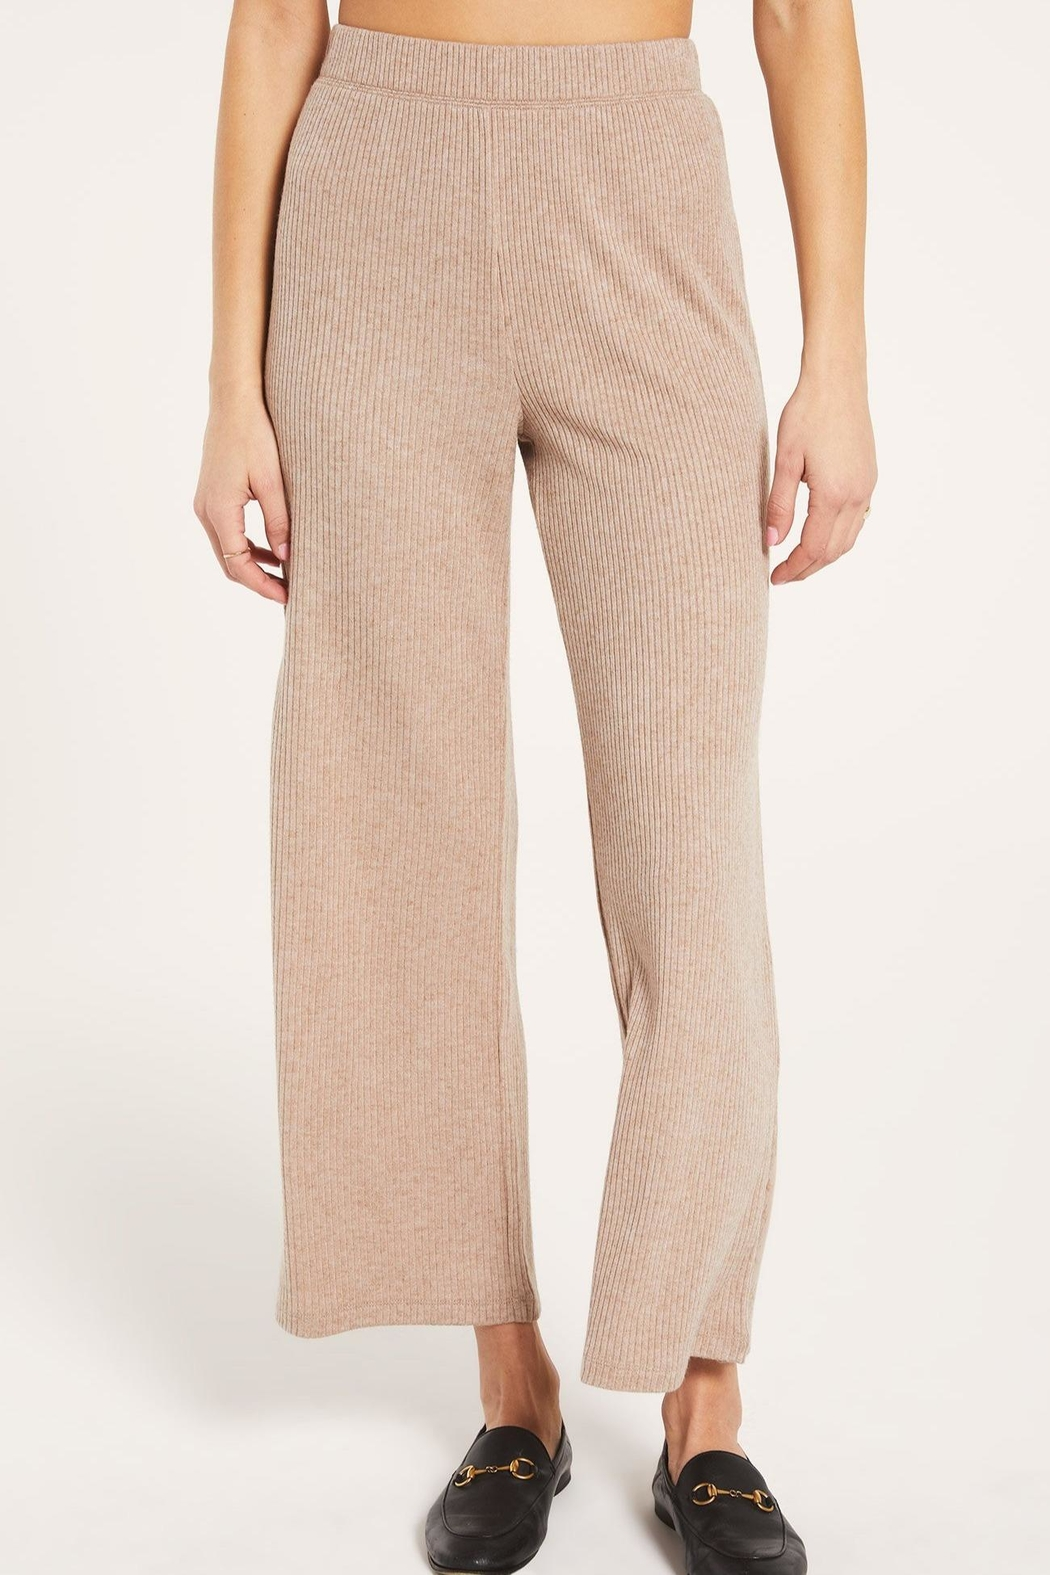 z supply Wide-Leg Ribbed Pant - Main Image